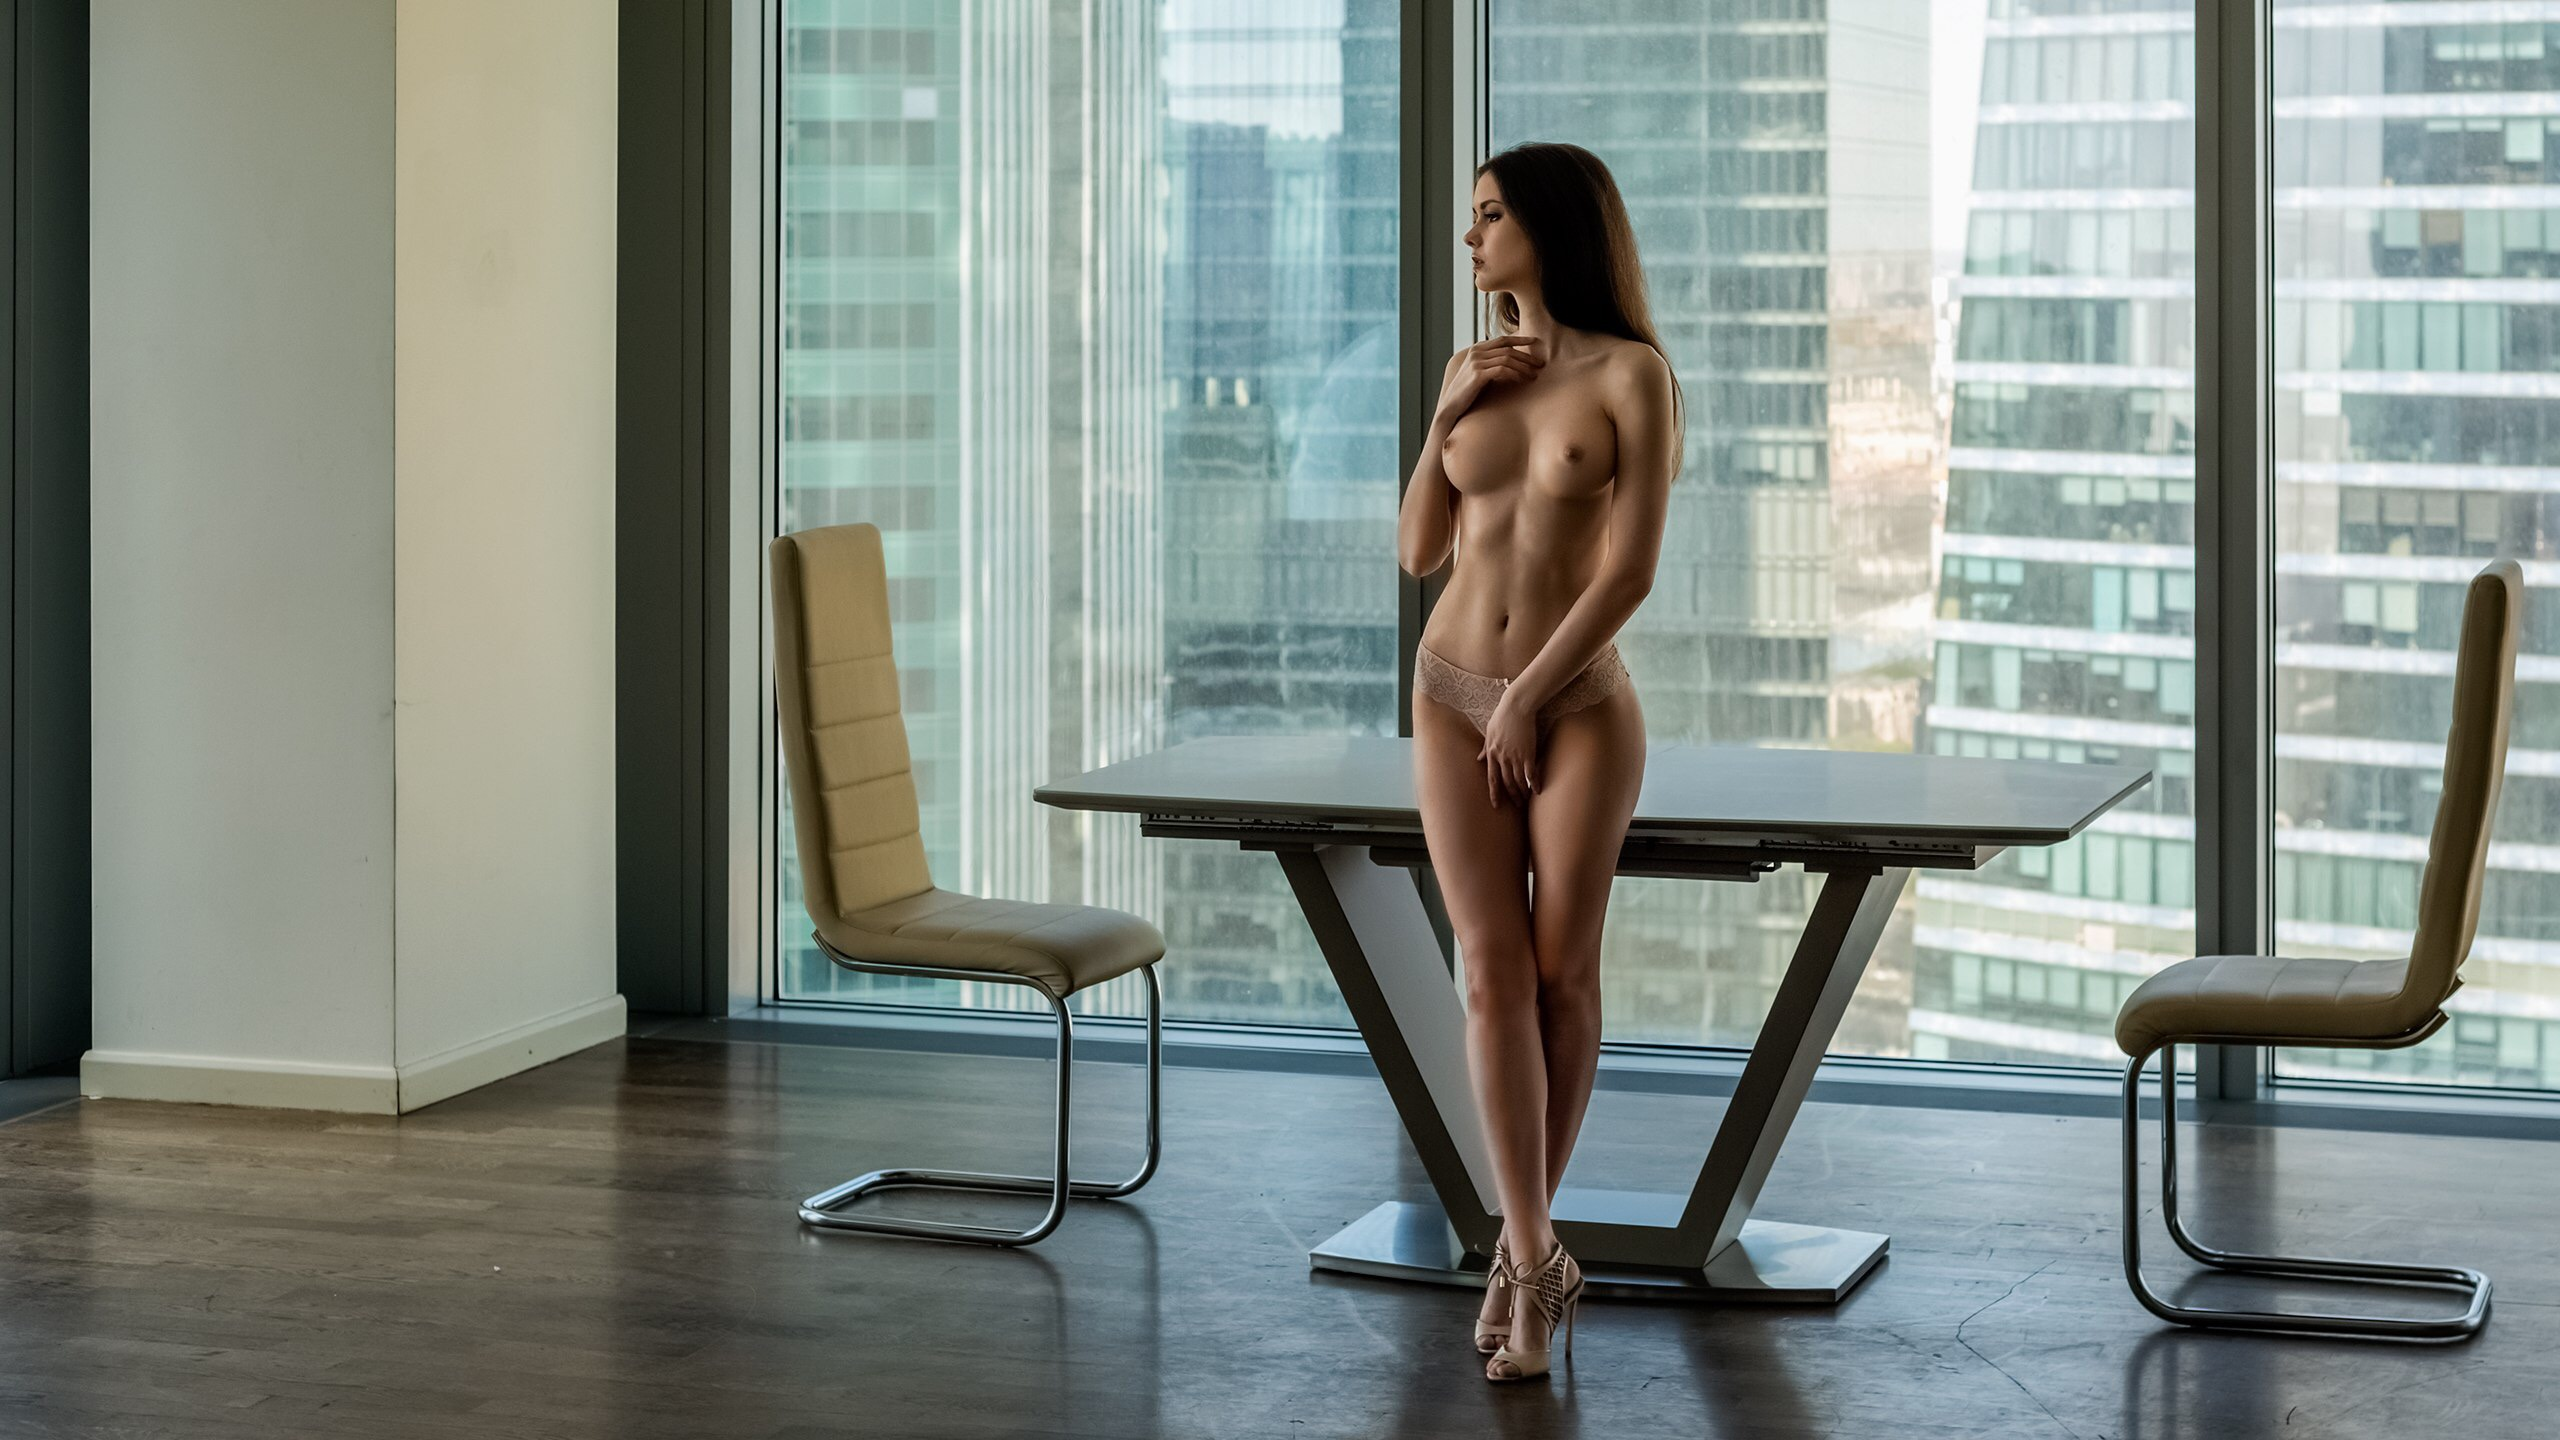 Sex And The City Nudes